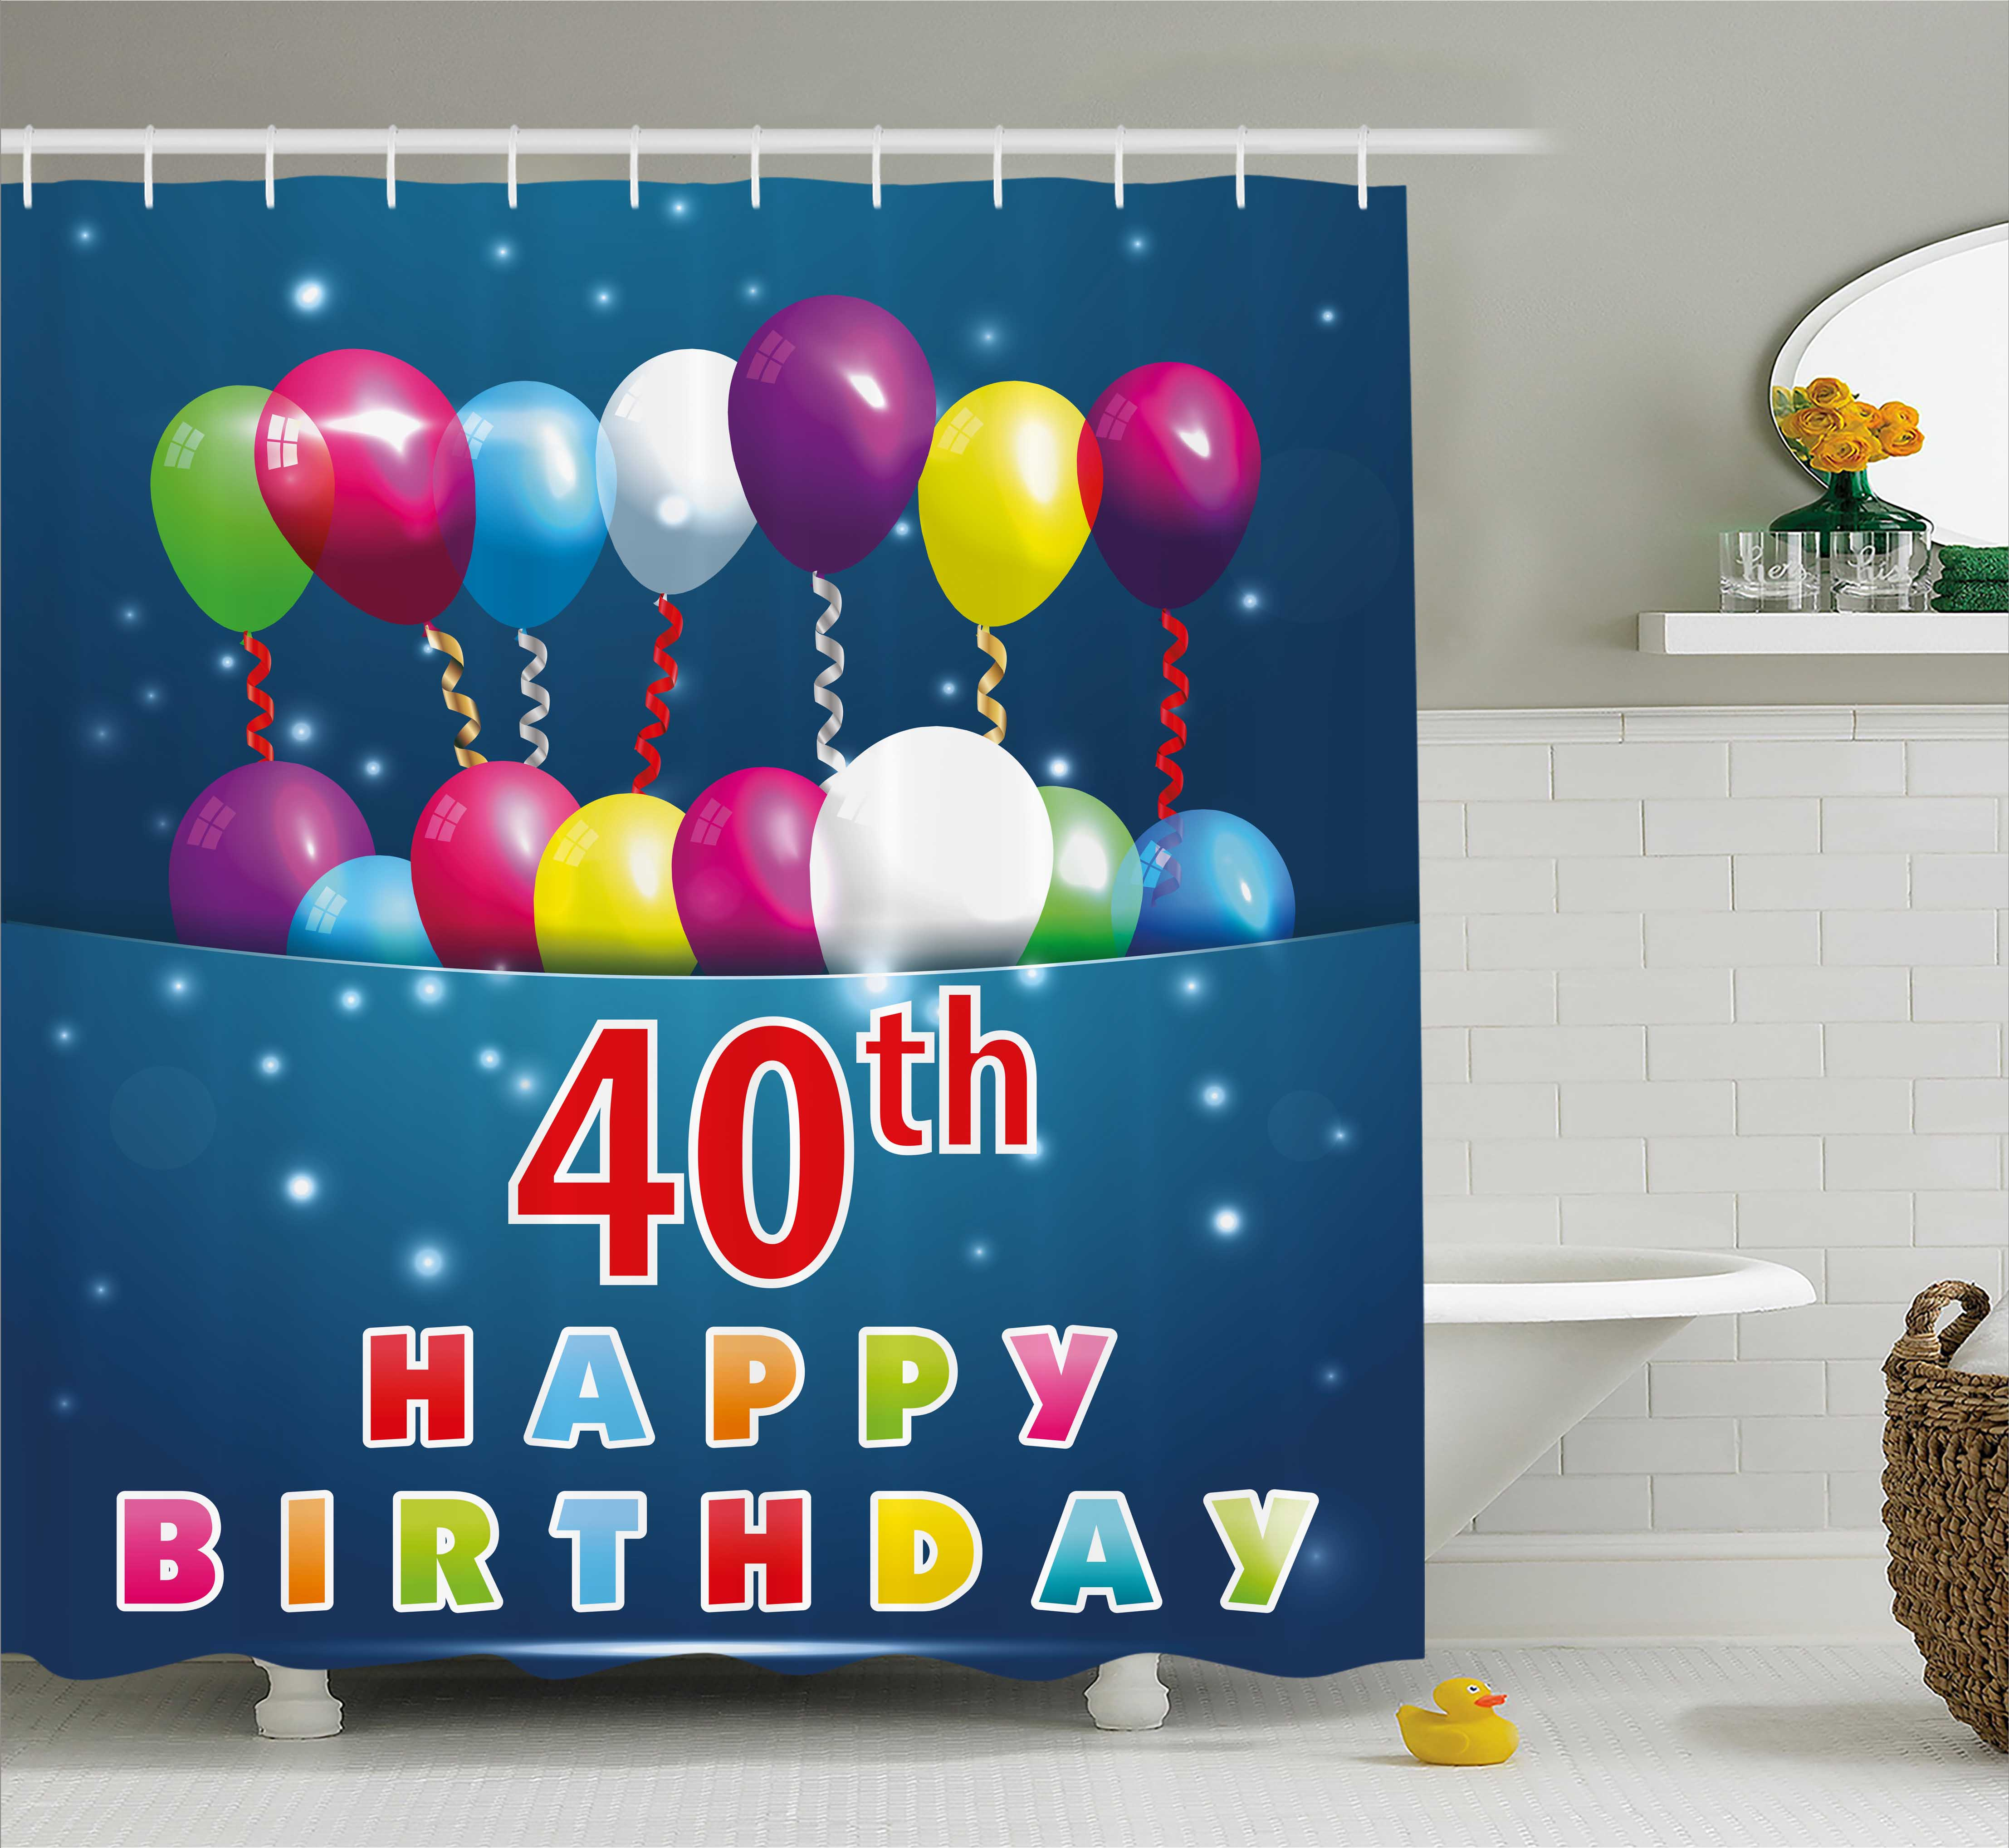 40th Birthday Decorations Shower Curtain, Special Day Surprise Occasion Party Colorful Balloons Ribbons, Fabric Bathroom Set with Hooks, 69W X 70L Inches, Multicolor, by Ambesonne